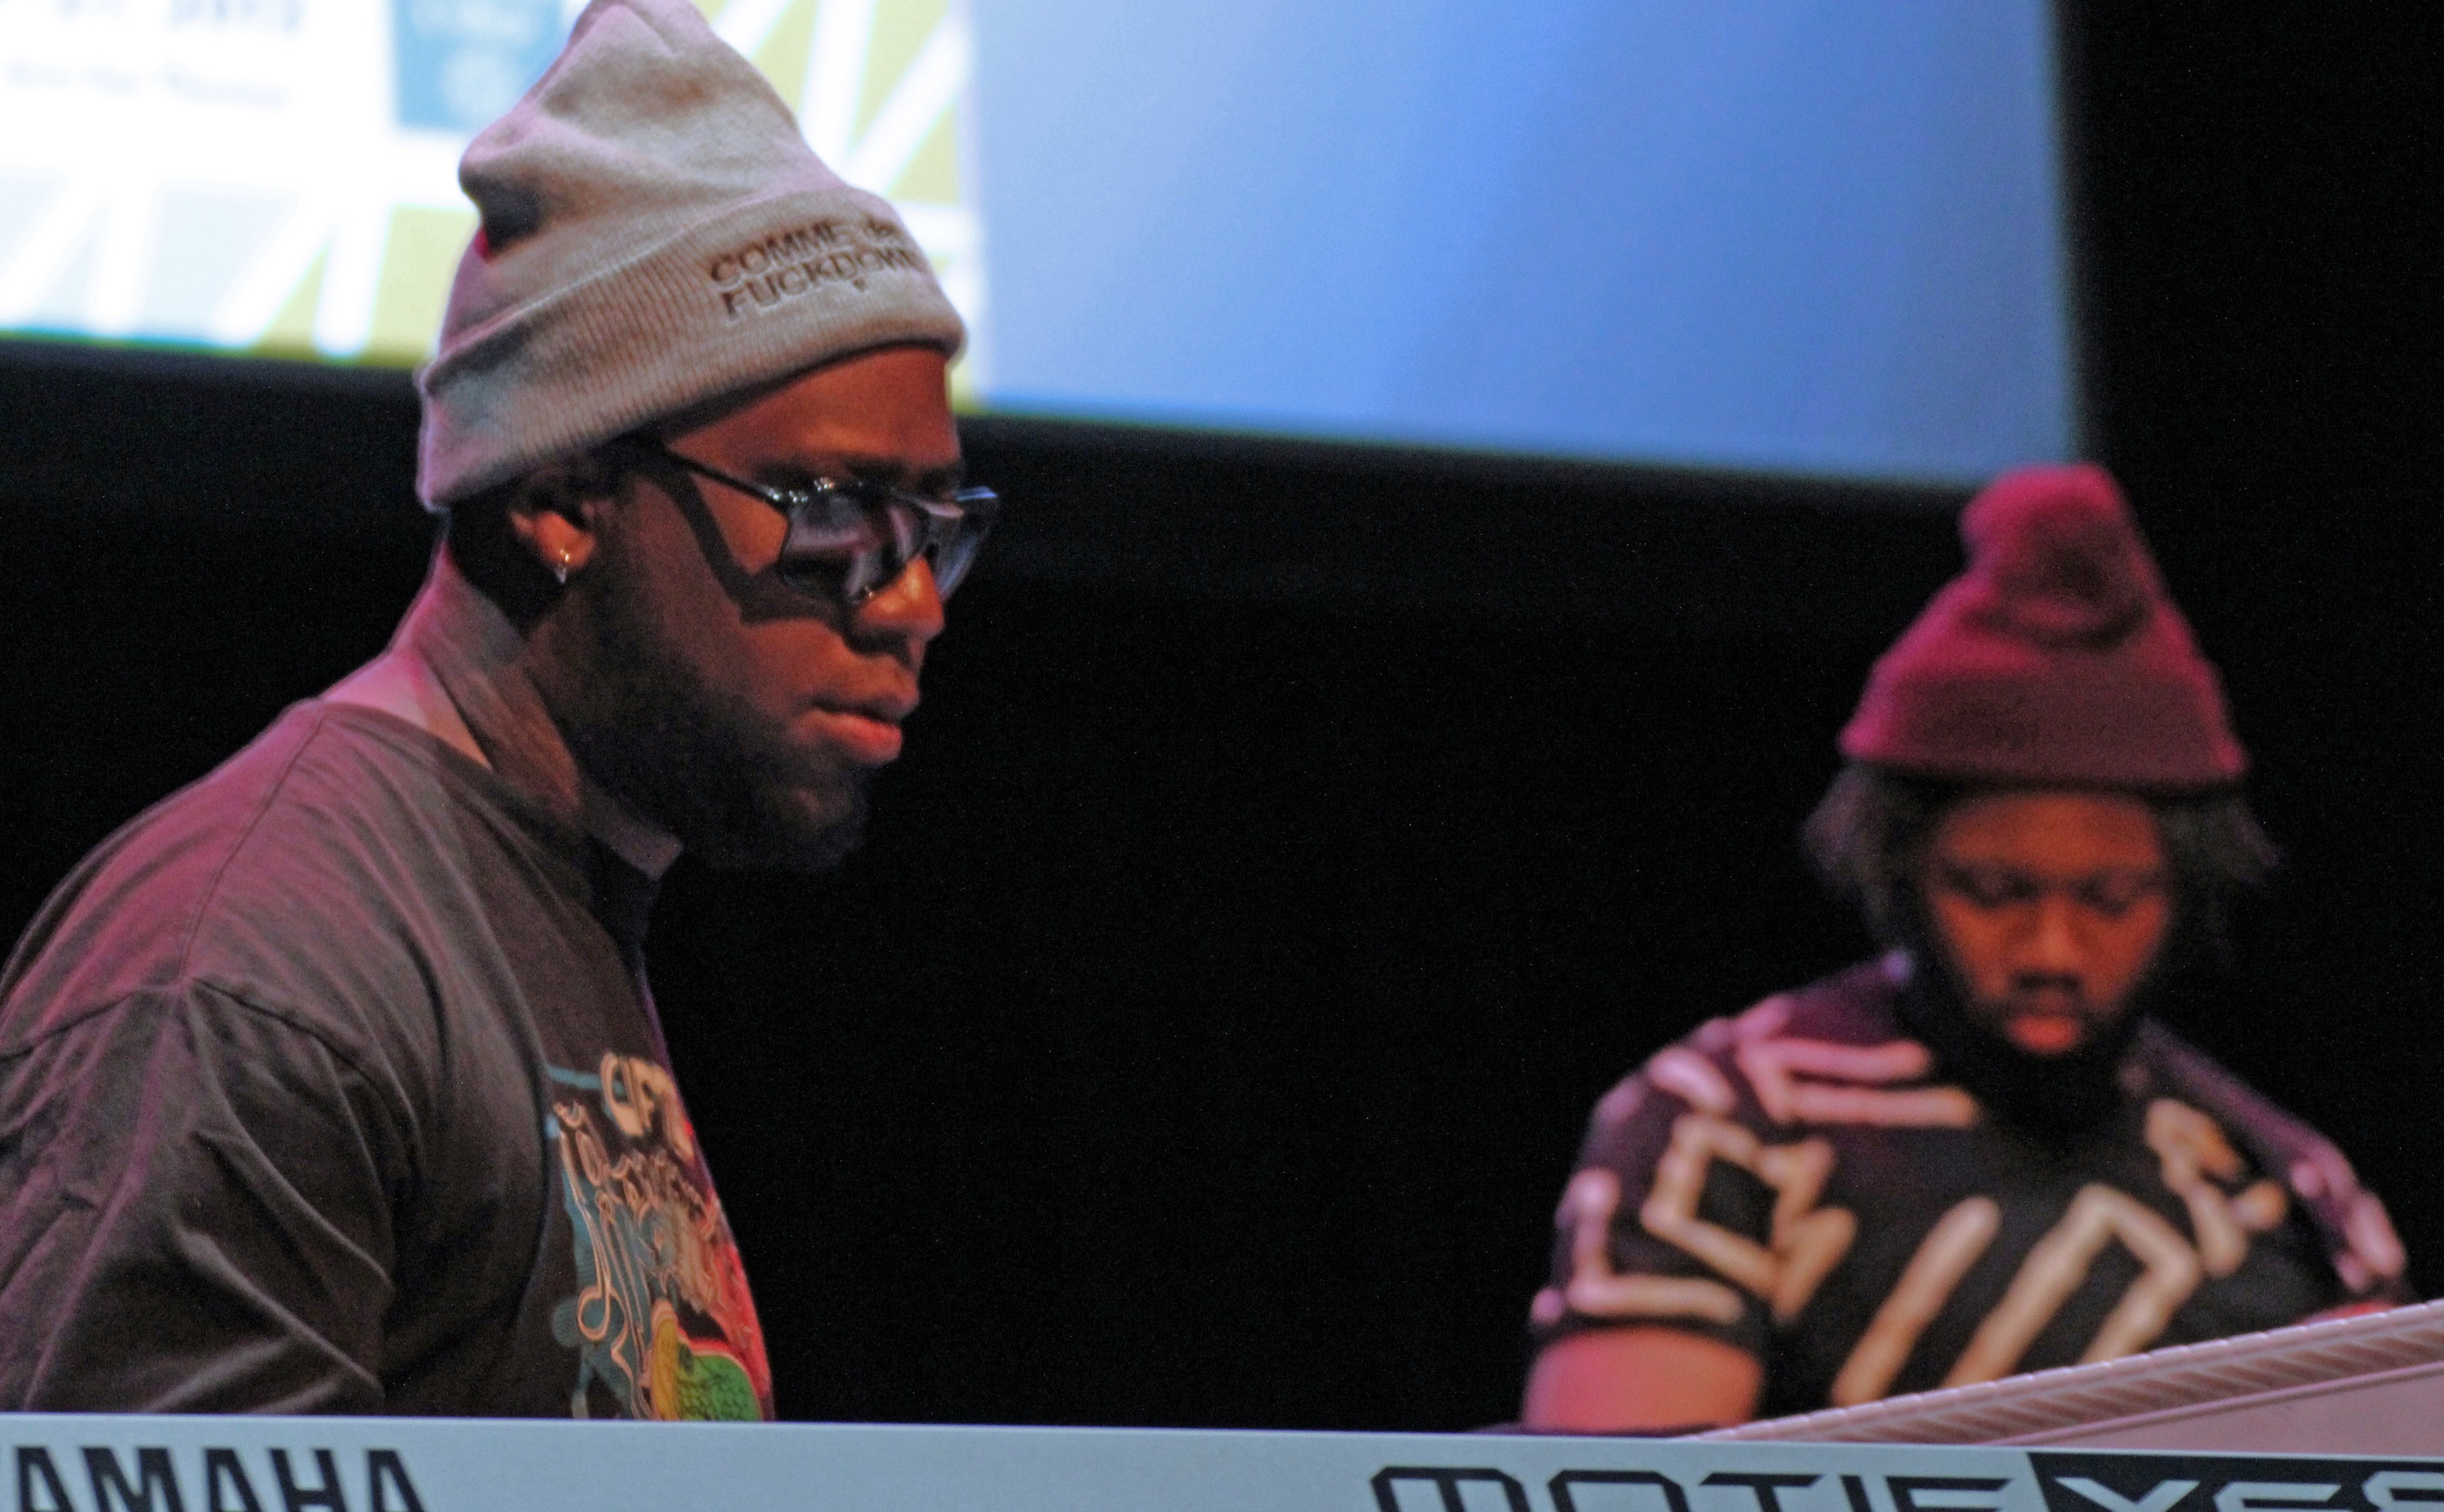 Robert glasper and burniss travis at tri-c jazzfest cleveland